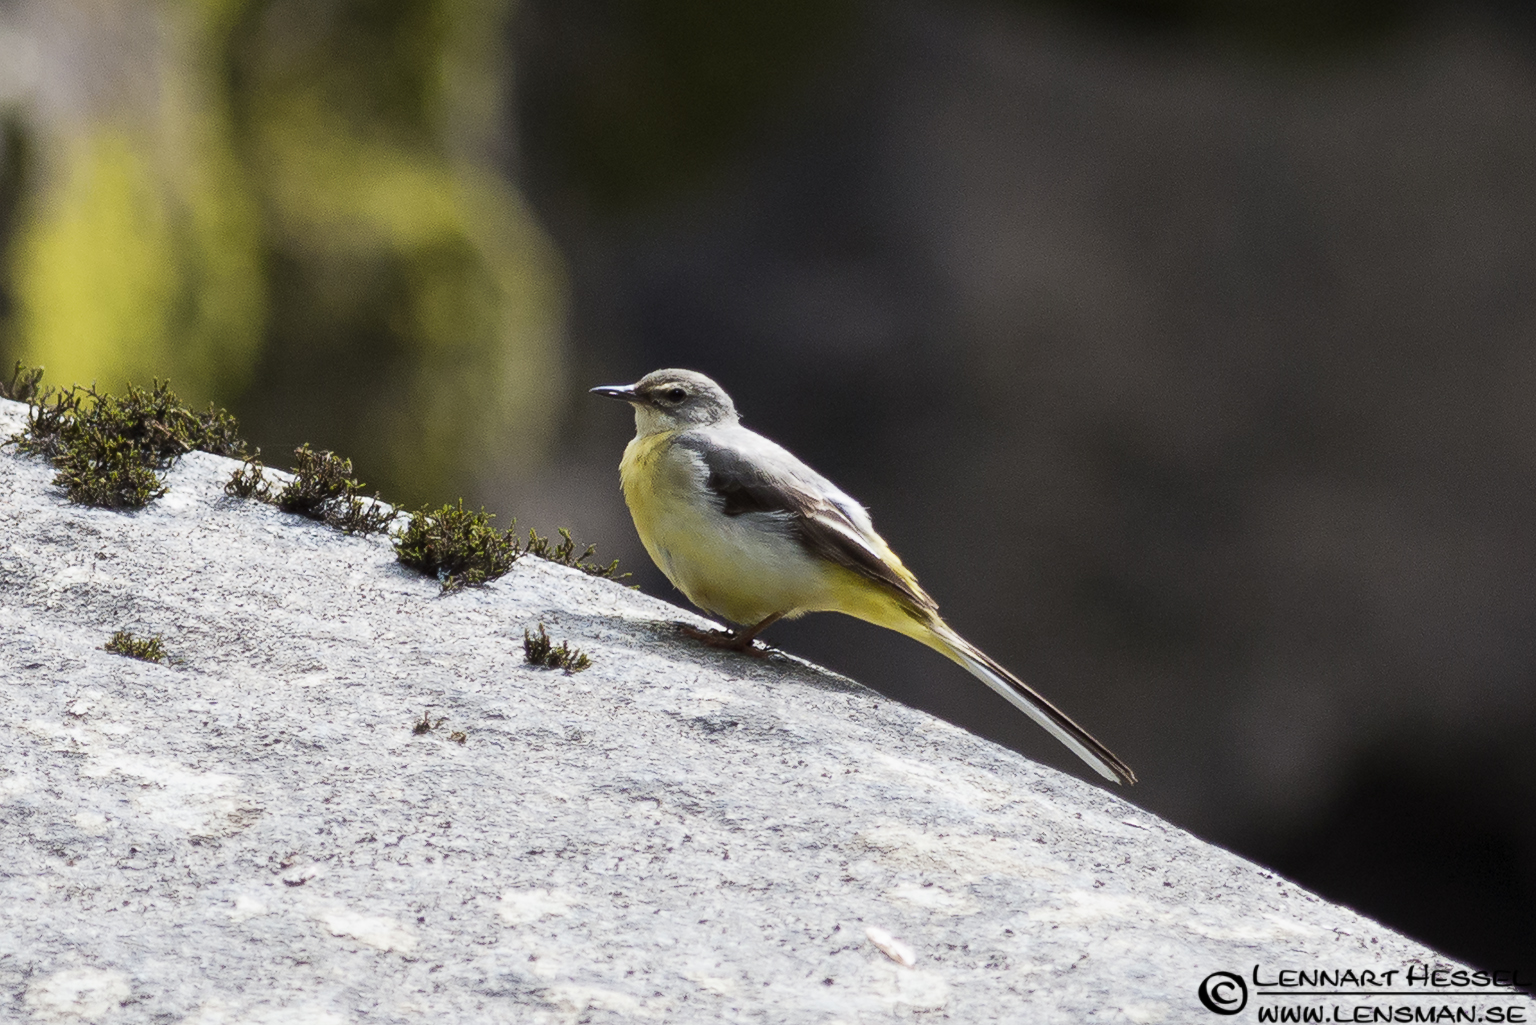 The Grey Wagtail at Lärjeån